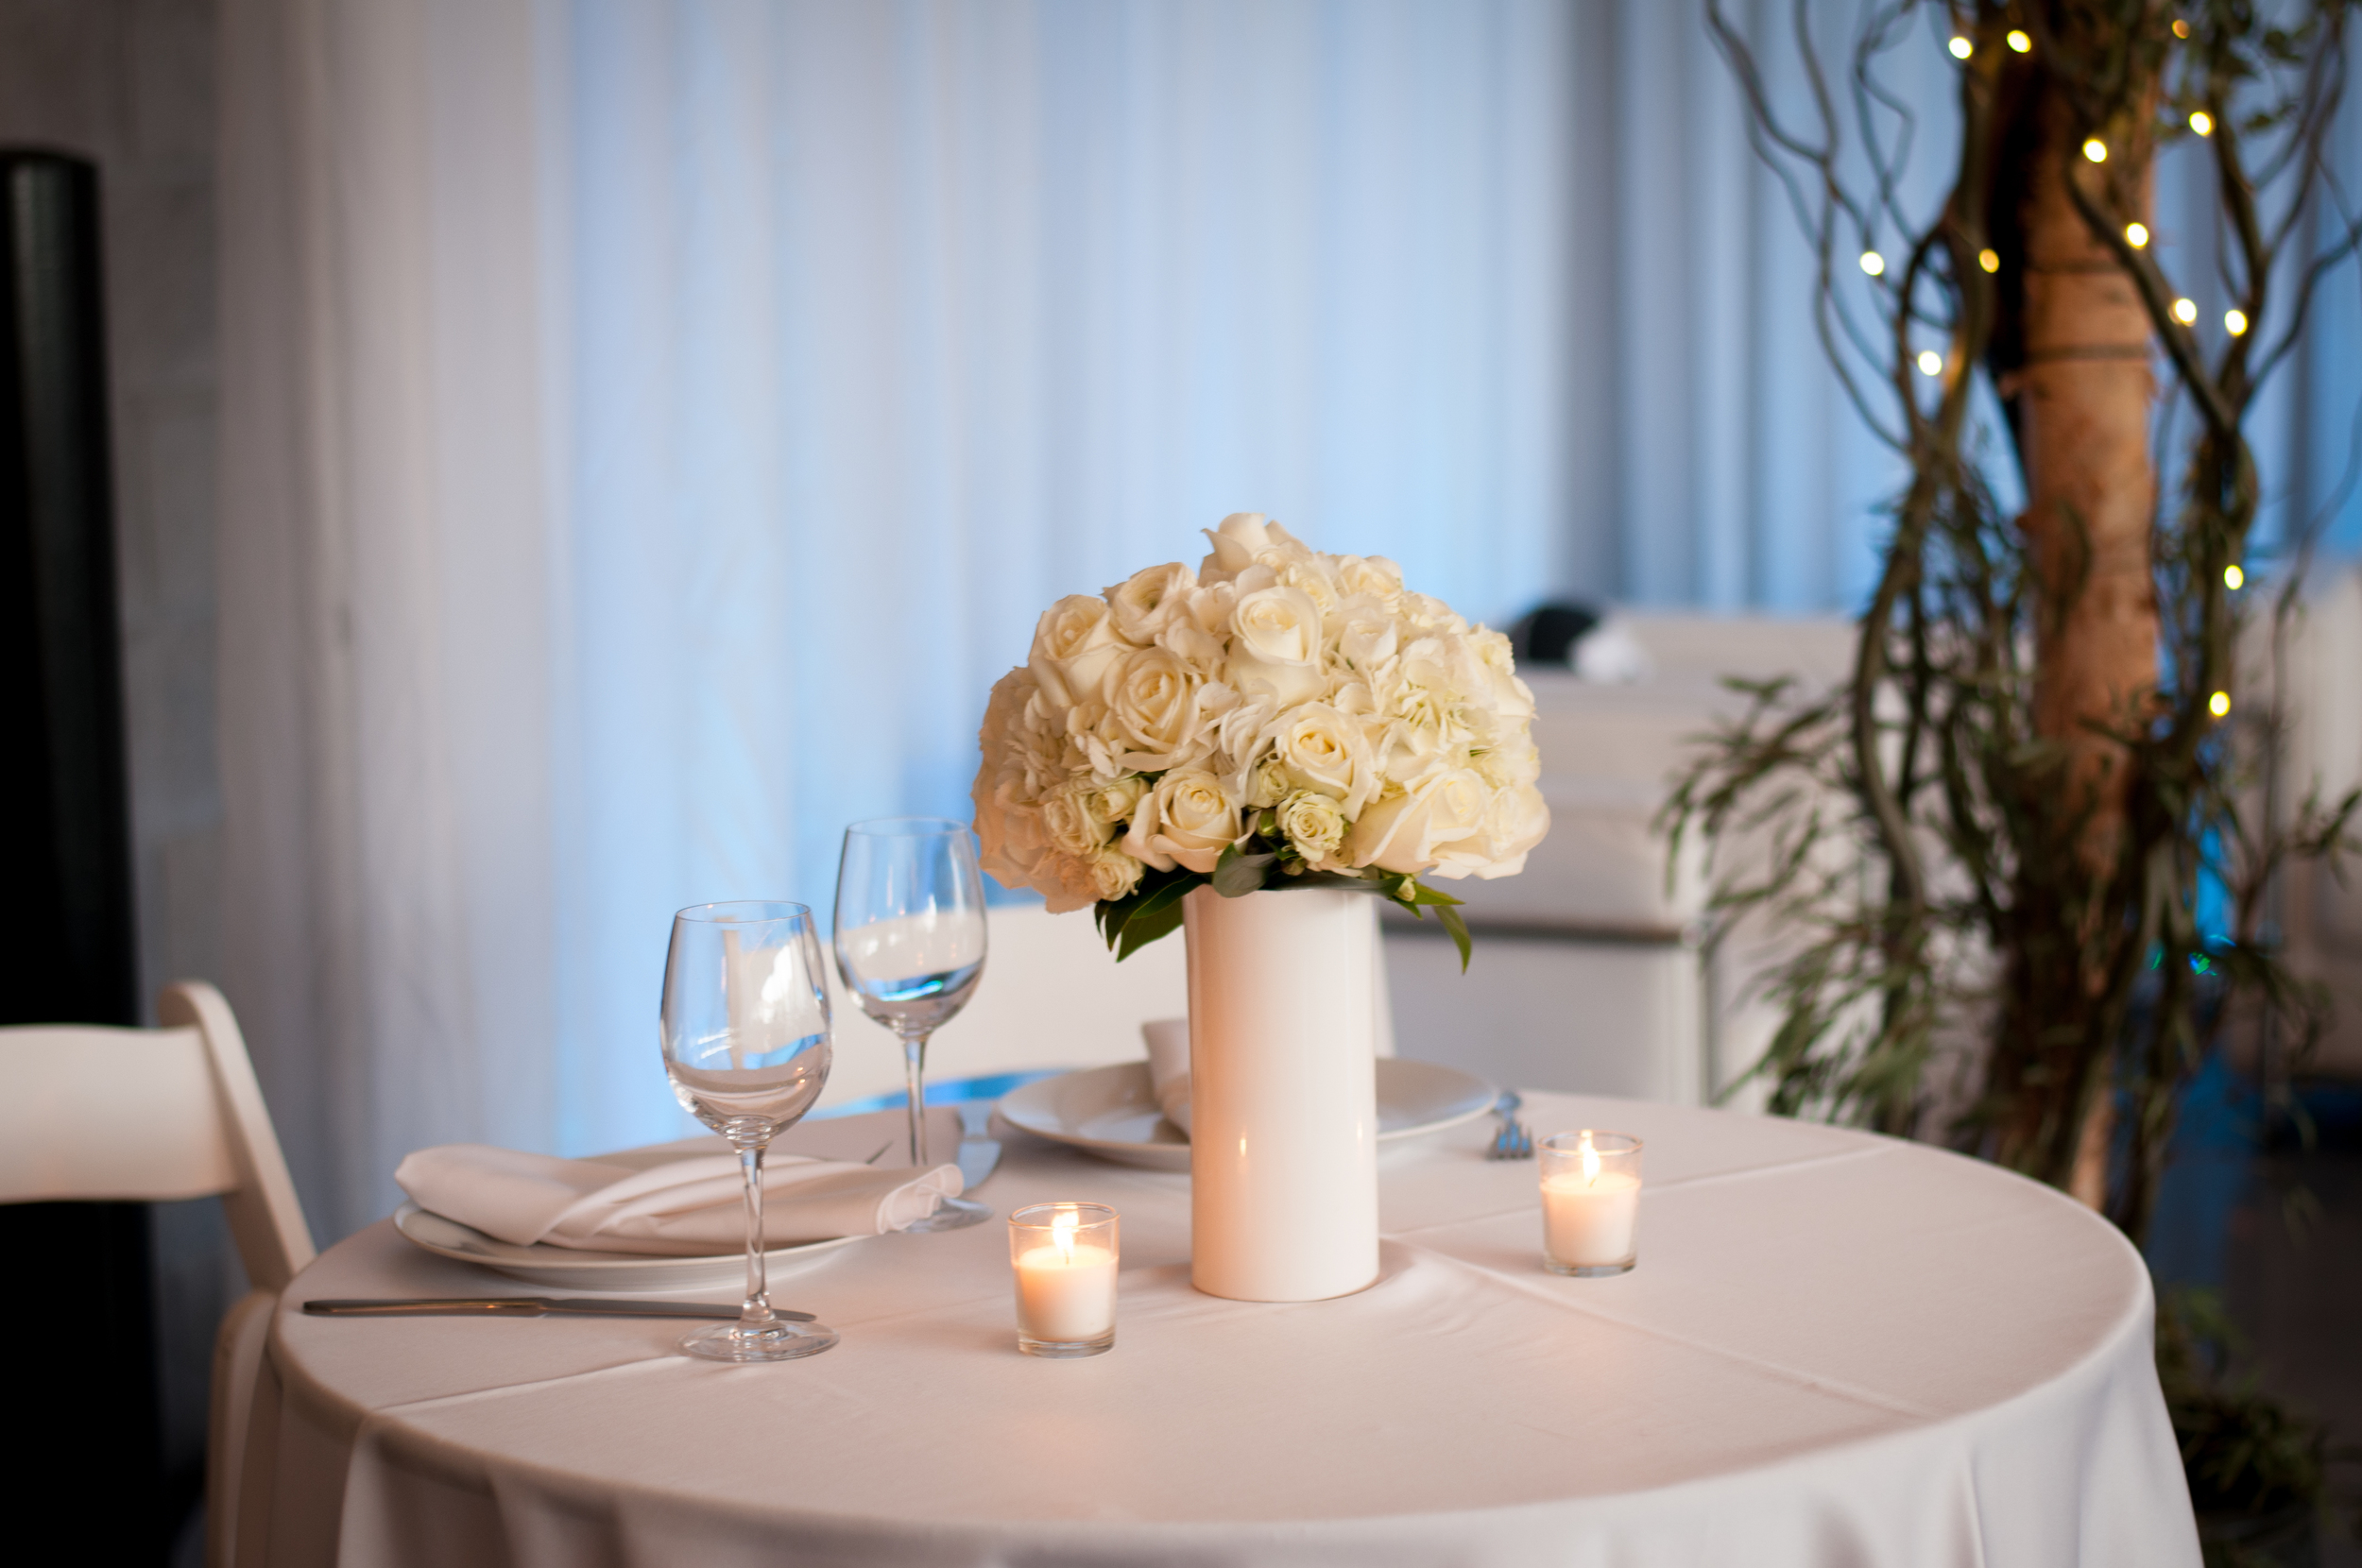 meredith donnelly photography-108.jpg